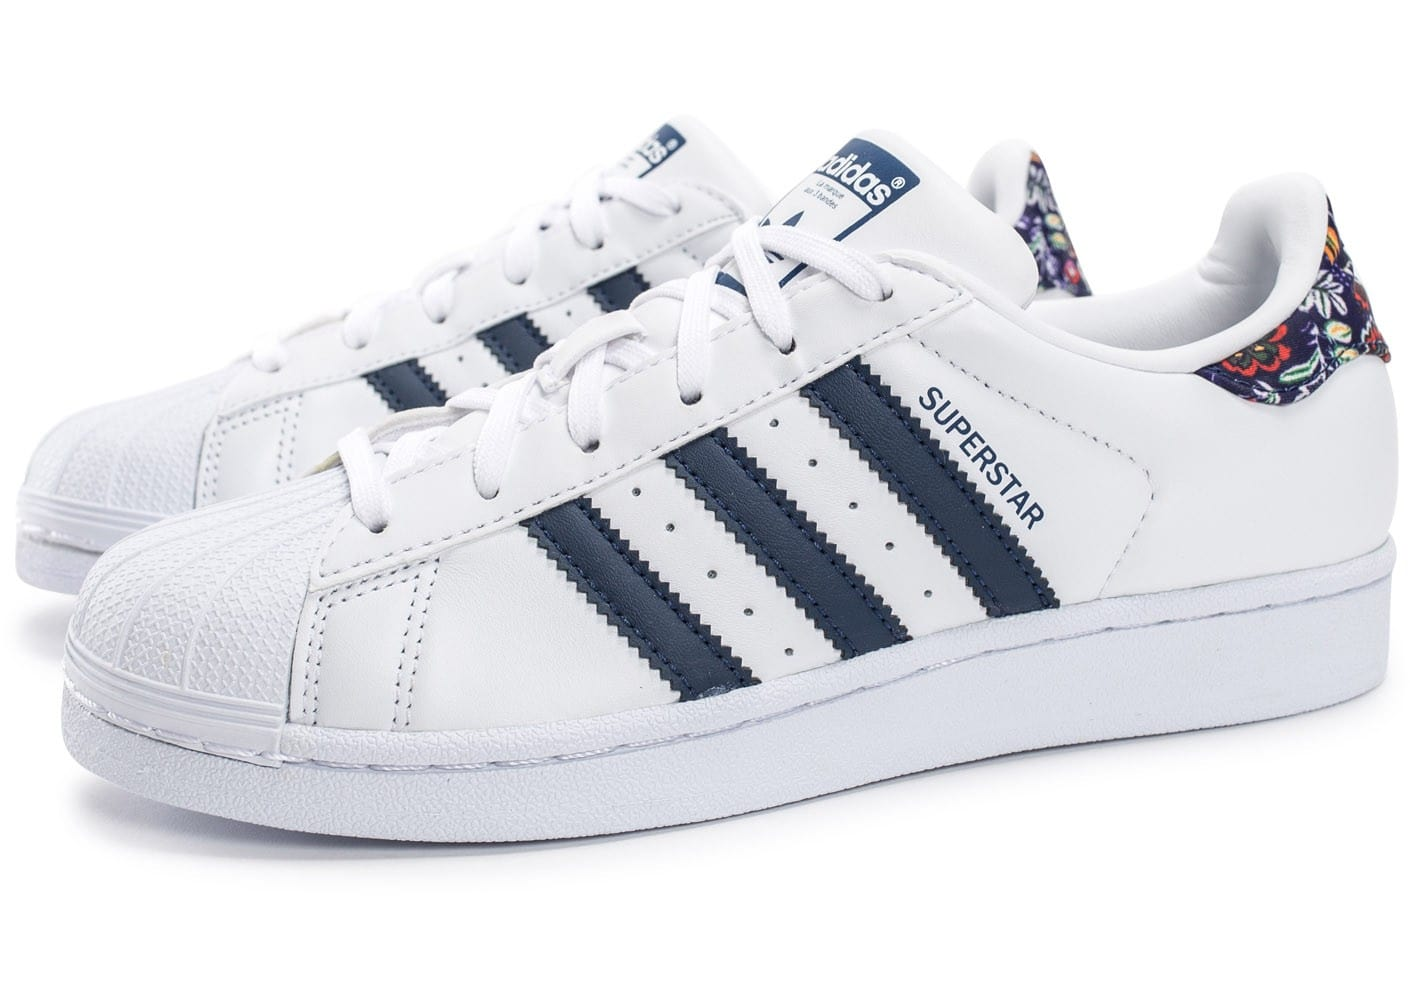 adidas superstar farm company blanche et bleu marine chaussures adidas chausport. Black Bedroom Furniture Sets. Home Design Ideas